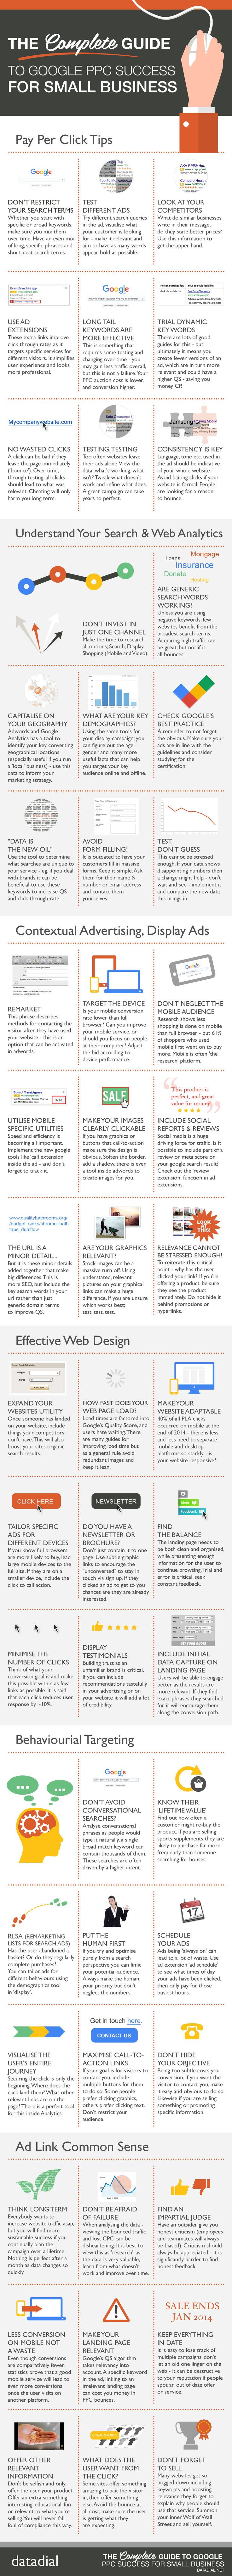 53 Steps to Ultimate PPC Success for Small Business #Infographic #Advertising #Business #SmallBusiness